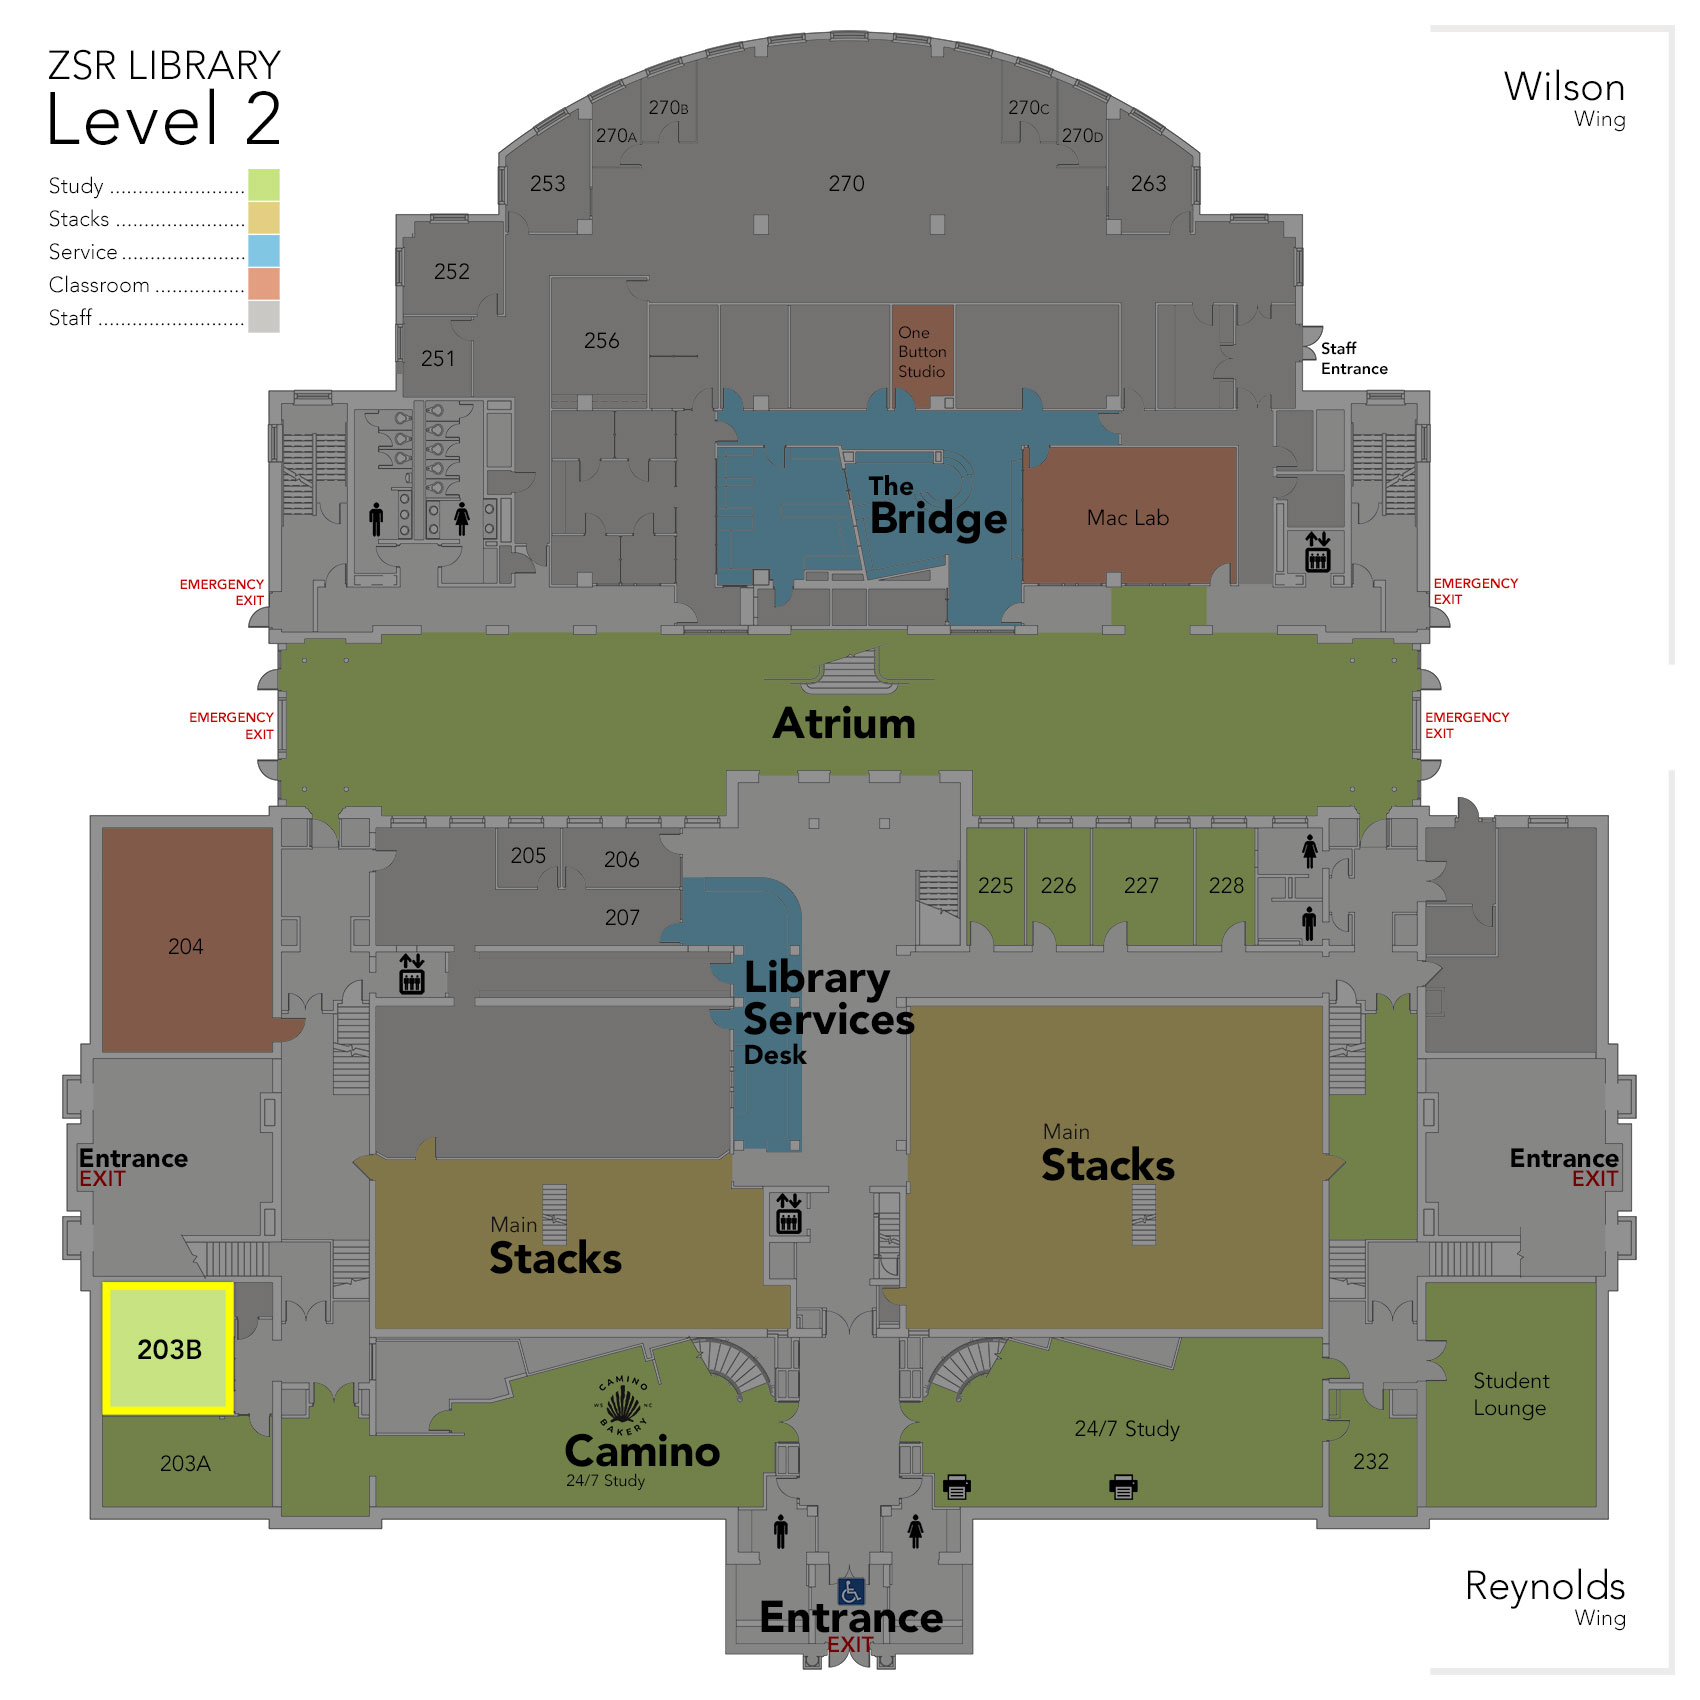 Level 2 Study Room 203B map